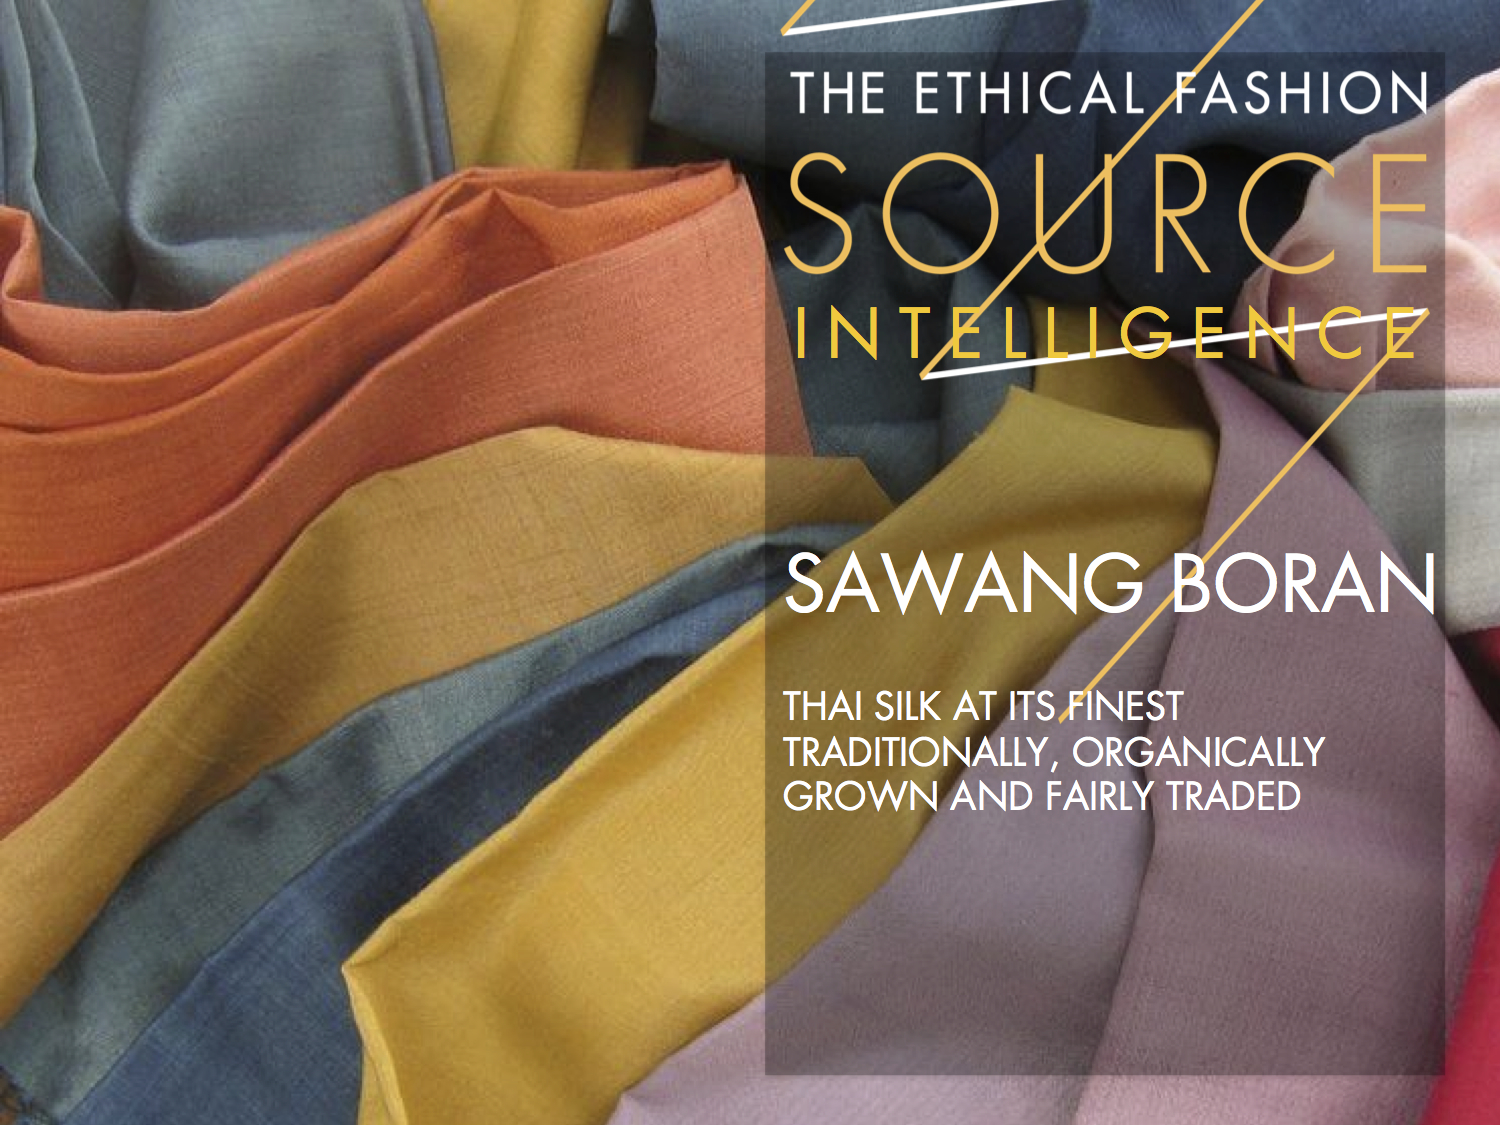 Oz Fair Trade supports Sawang Boran silk